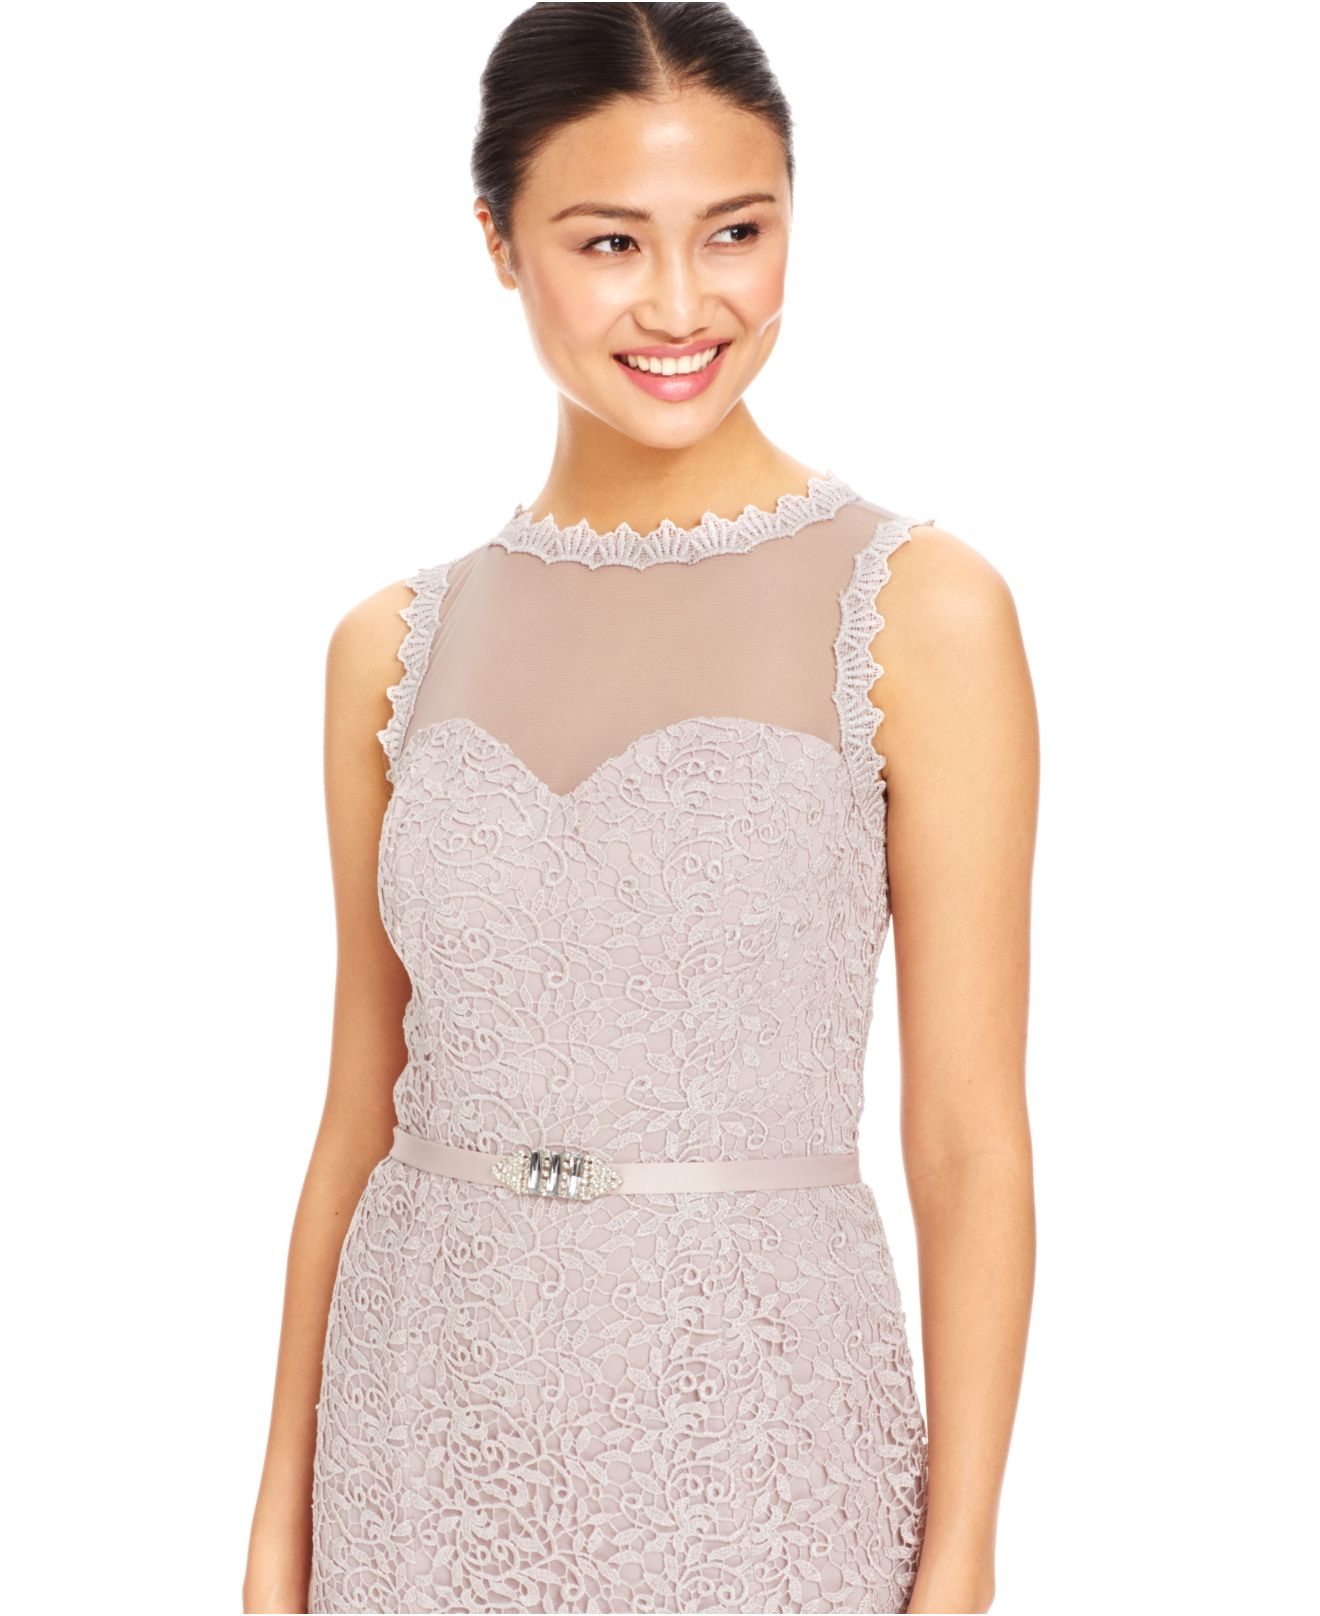 Snap Lyst Js Collections Illusion Lace Gown in Pink photos on Pinterest